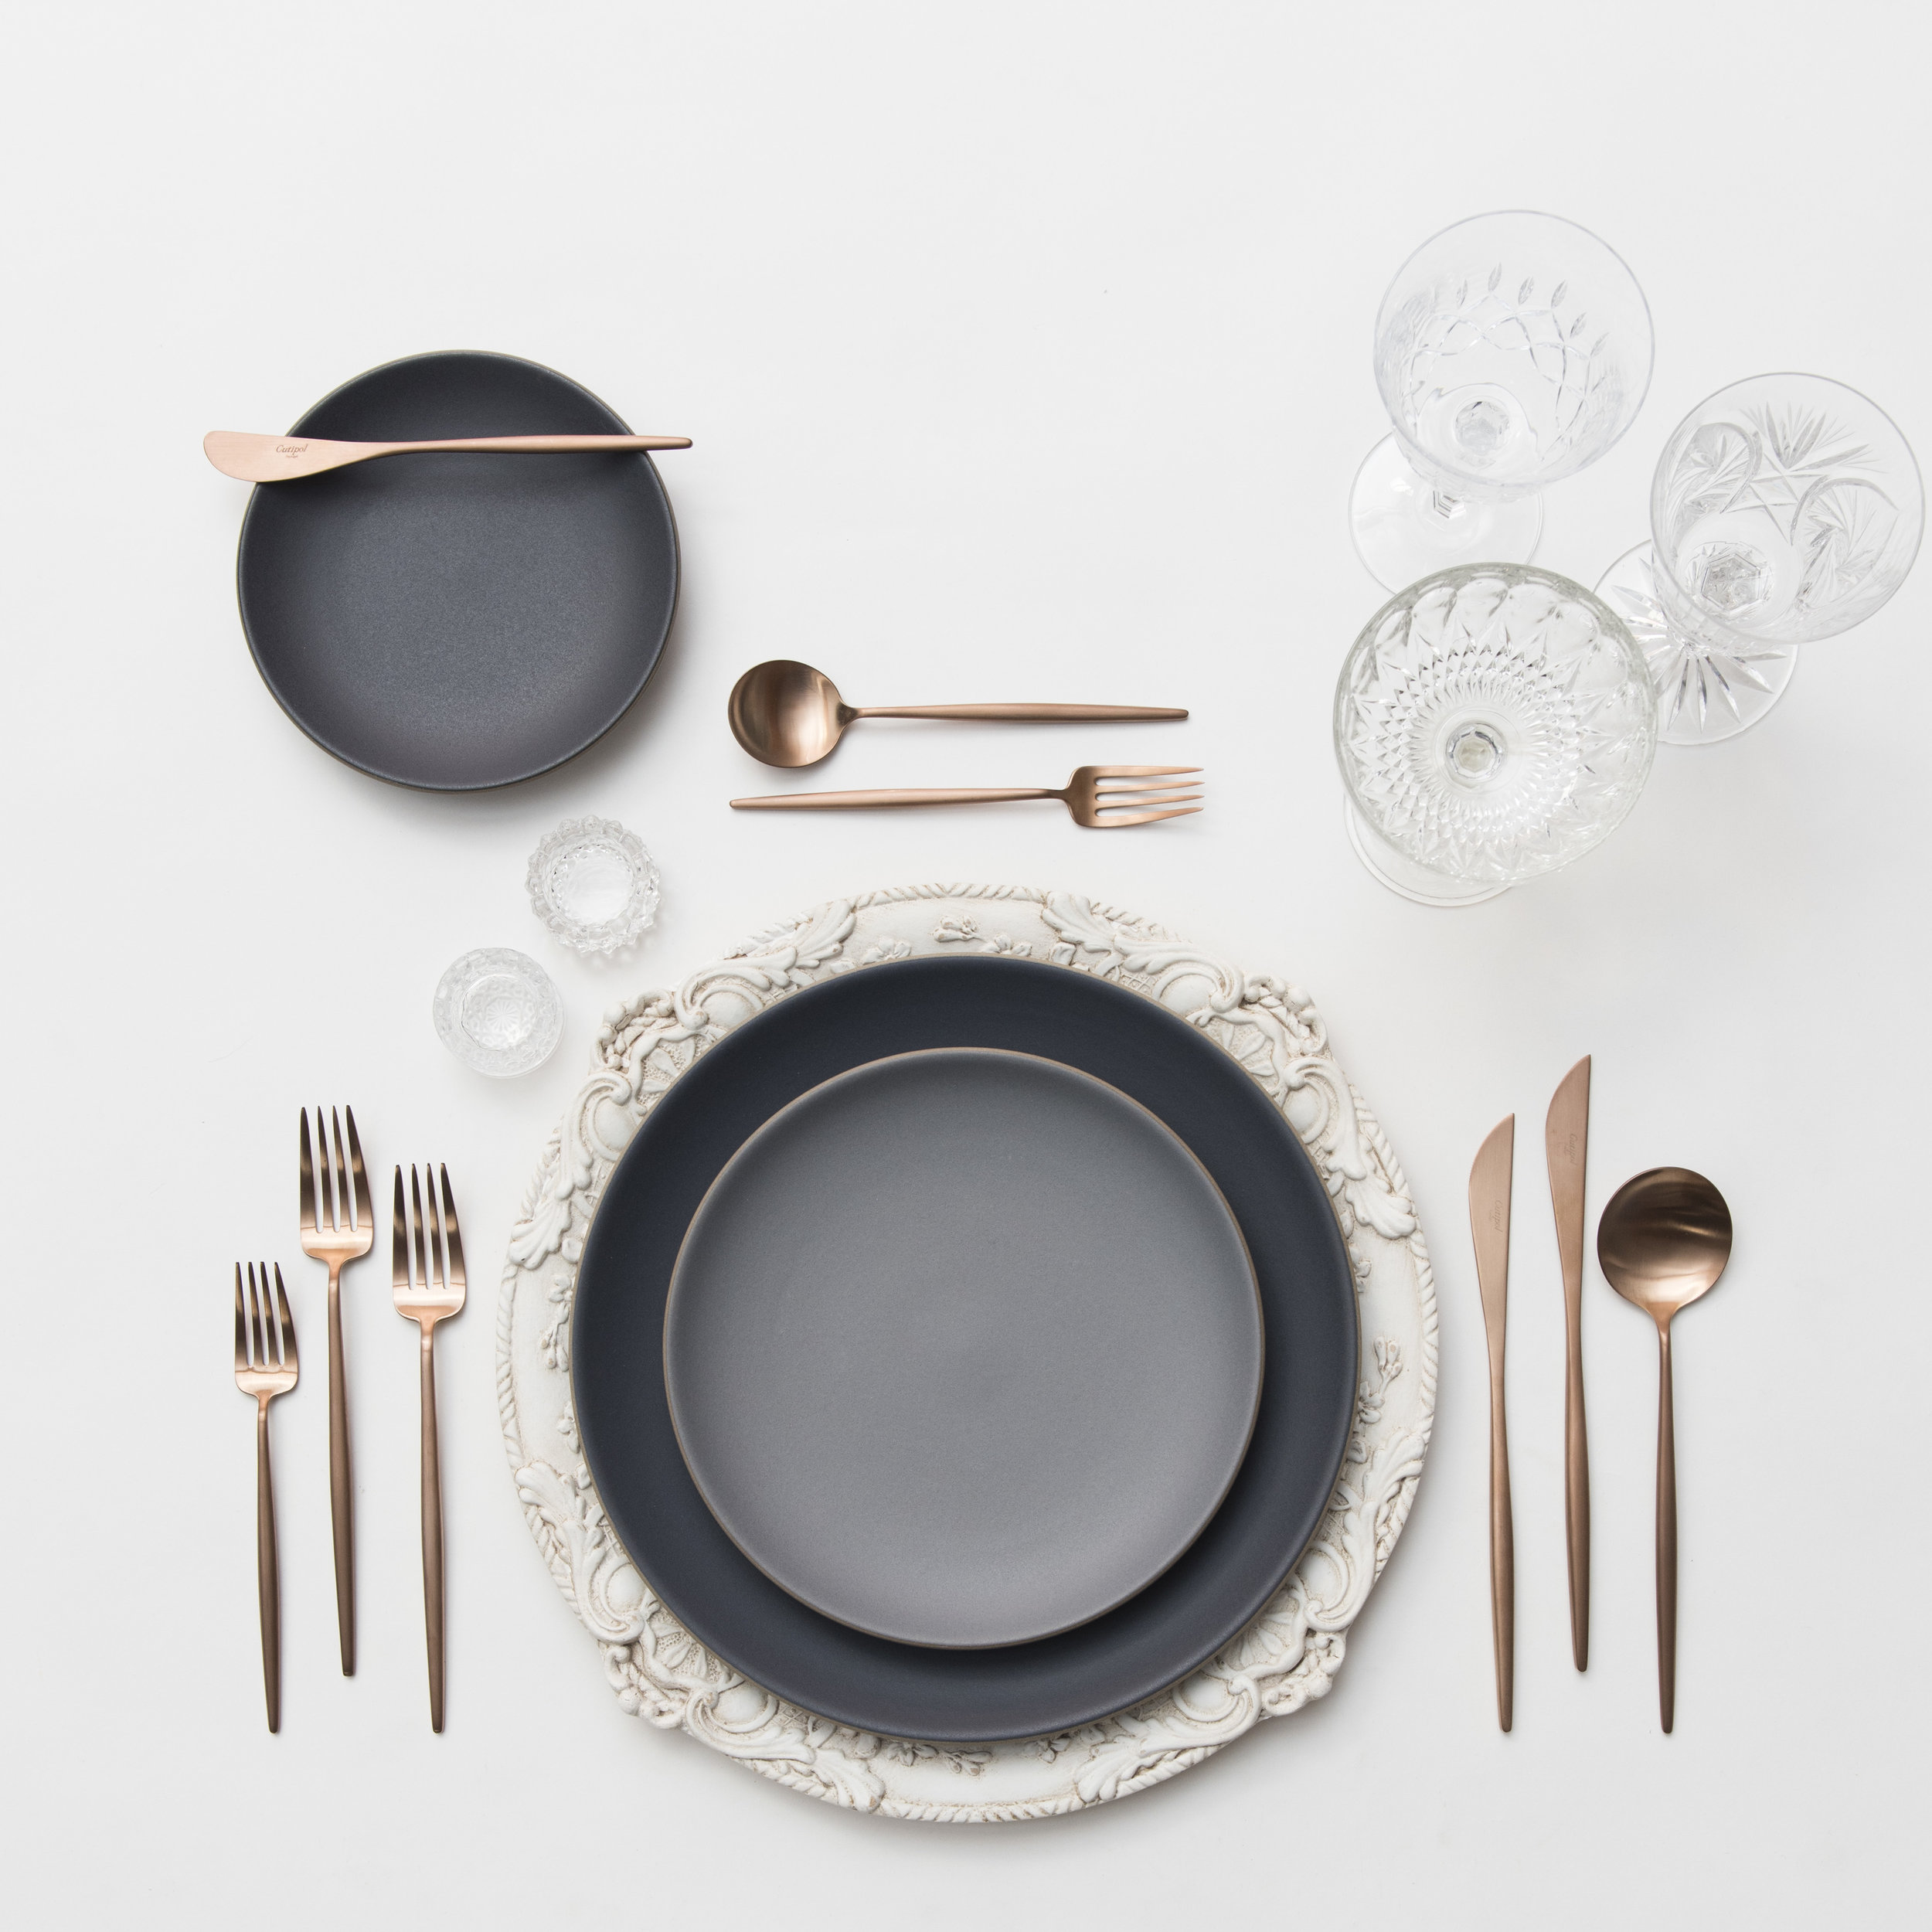 RENT: Verona Chargers in Antique White + Heath Ceramics in Indigo/Slate + Moon Flatware in Brushed Rose Gold + Vintage Cut Crystal Goblets + Vintage Champagne Coupes + Antique Crystal Salt Cellars   SHOP: Verona Chargers in Antique White + Moon Flatware in Brushed Rose Gold